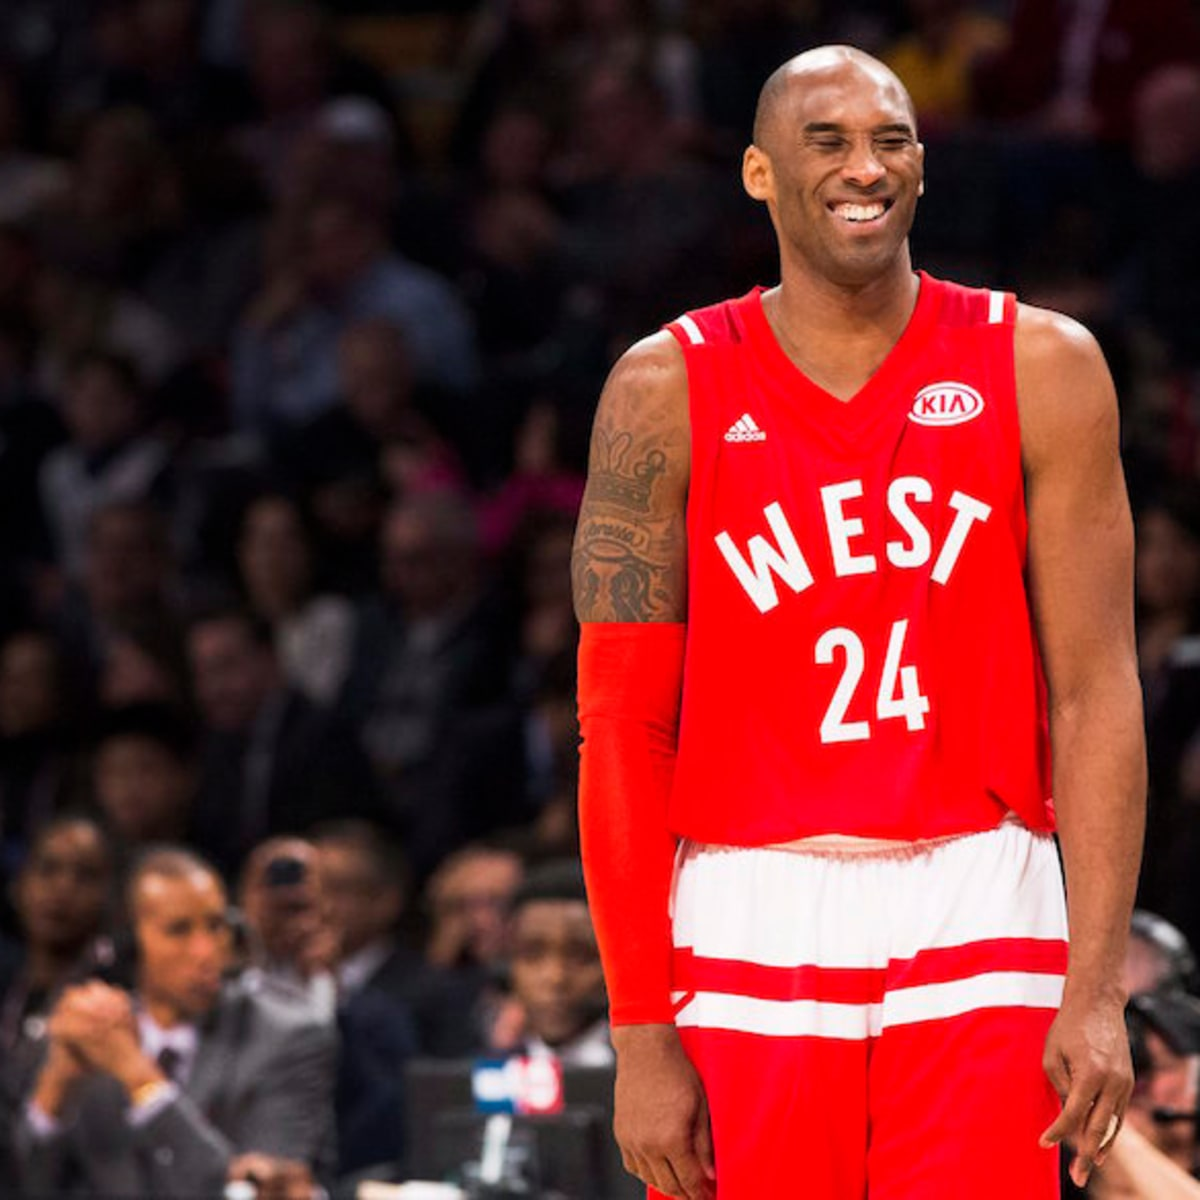 Kobe Bryant's All-Star jersey sells for over $100,000 - Sports ...